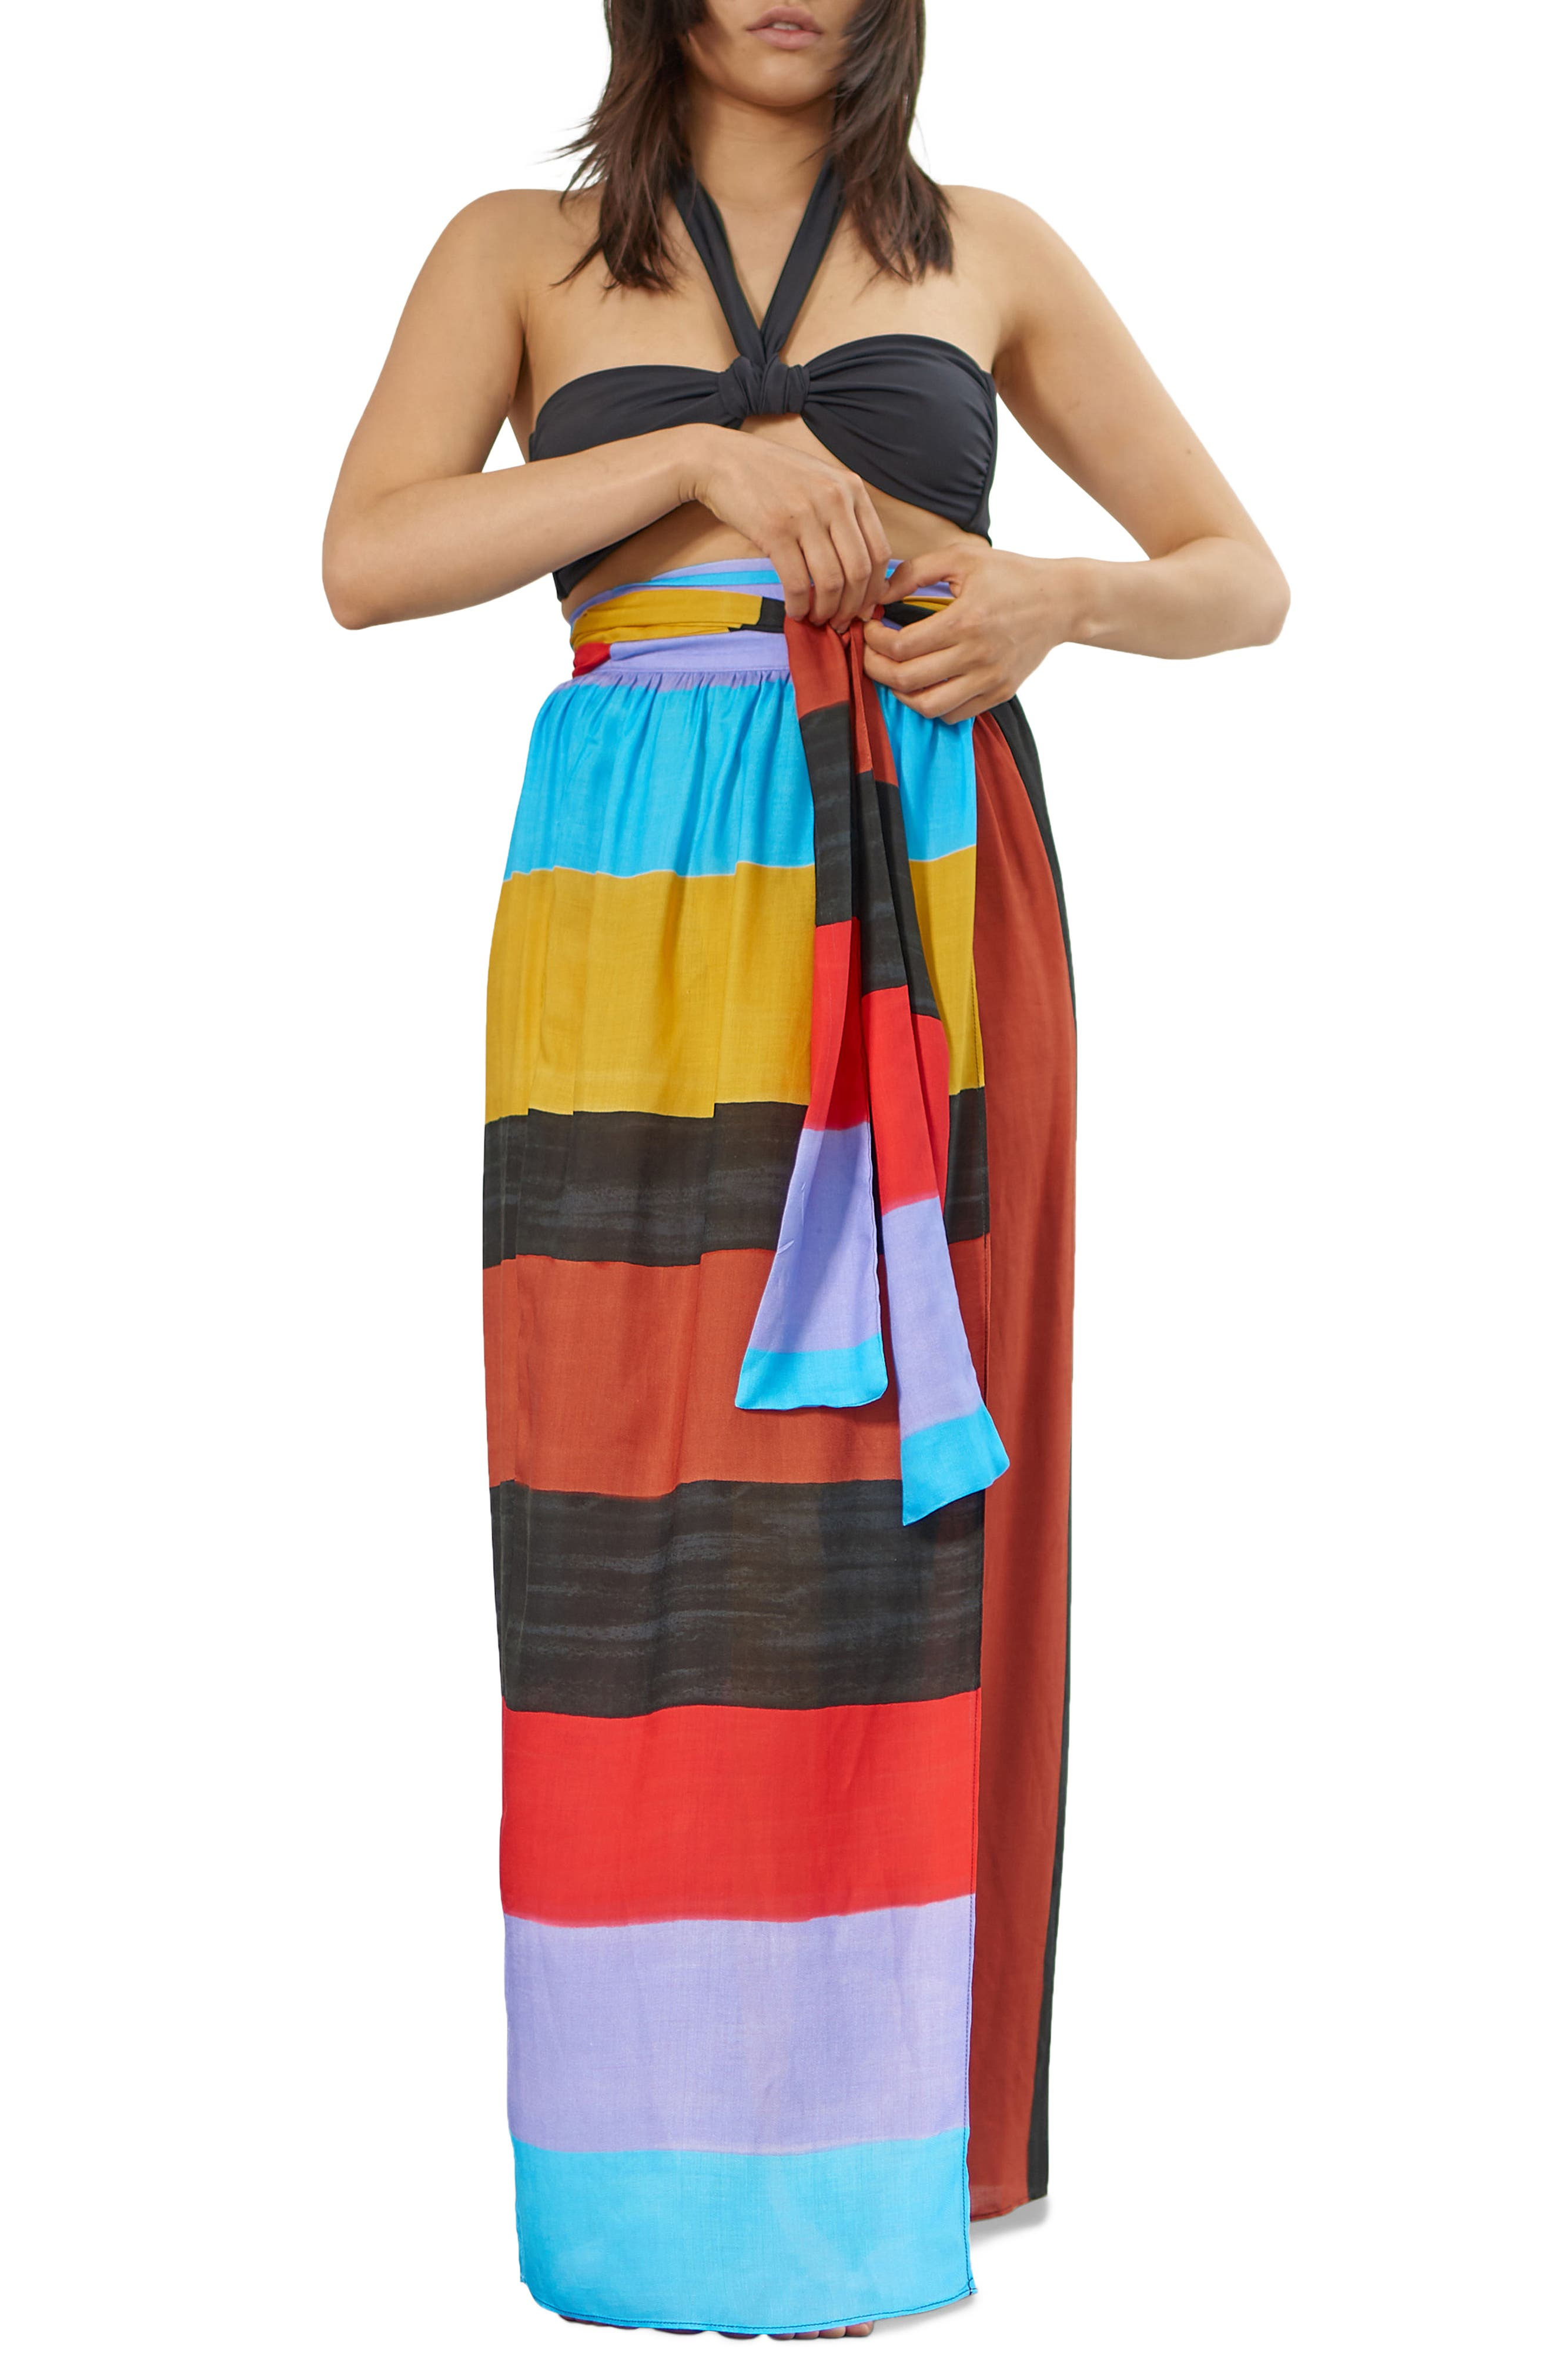 Cora Stripe Cover-Up Skirt,                             Main thumbnail 1, color,                             001